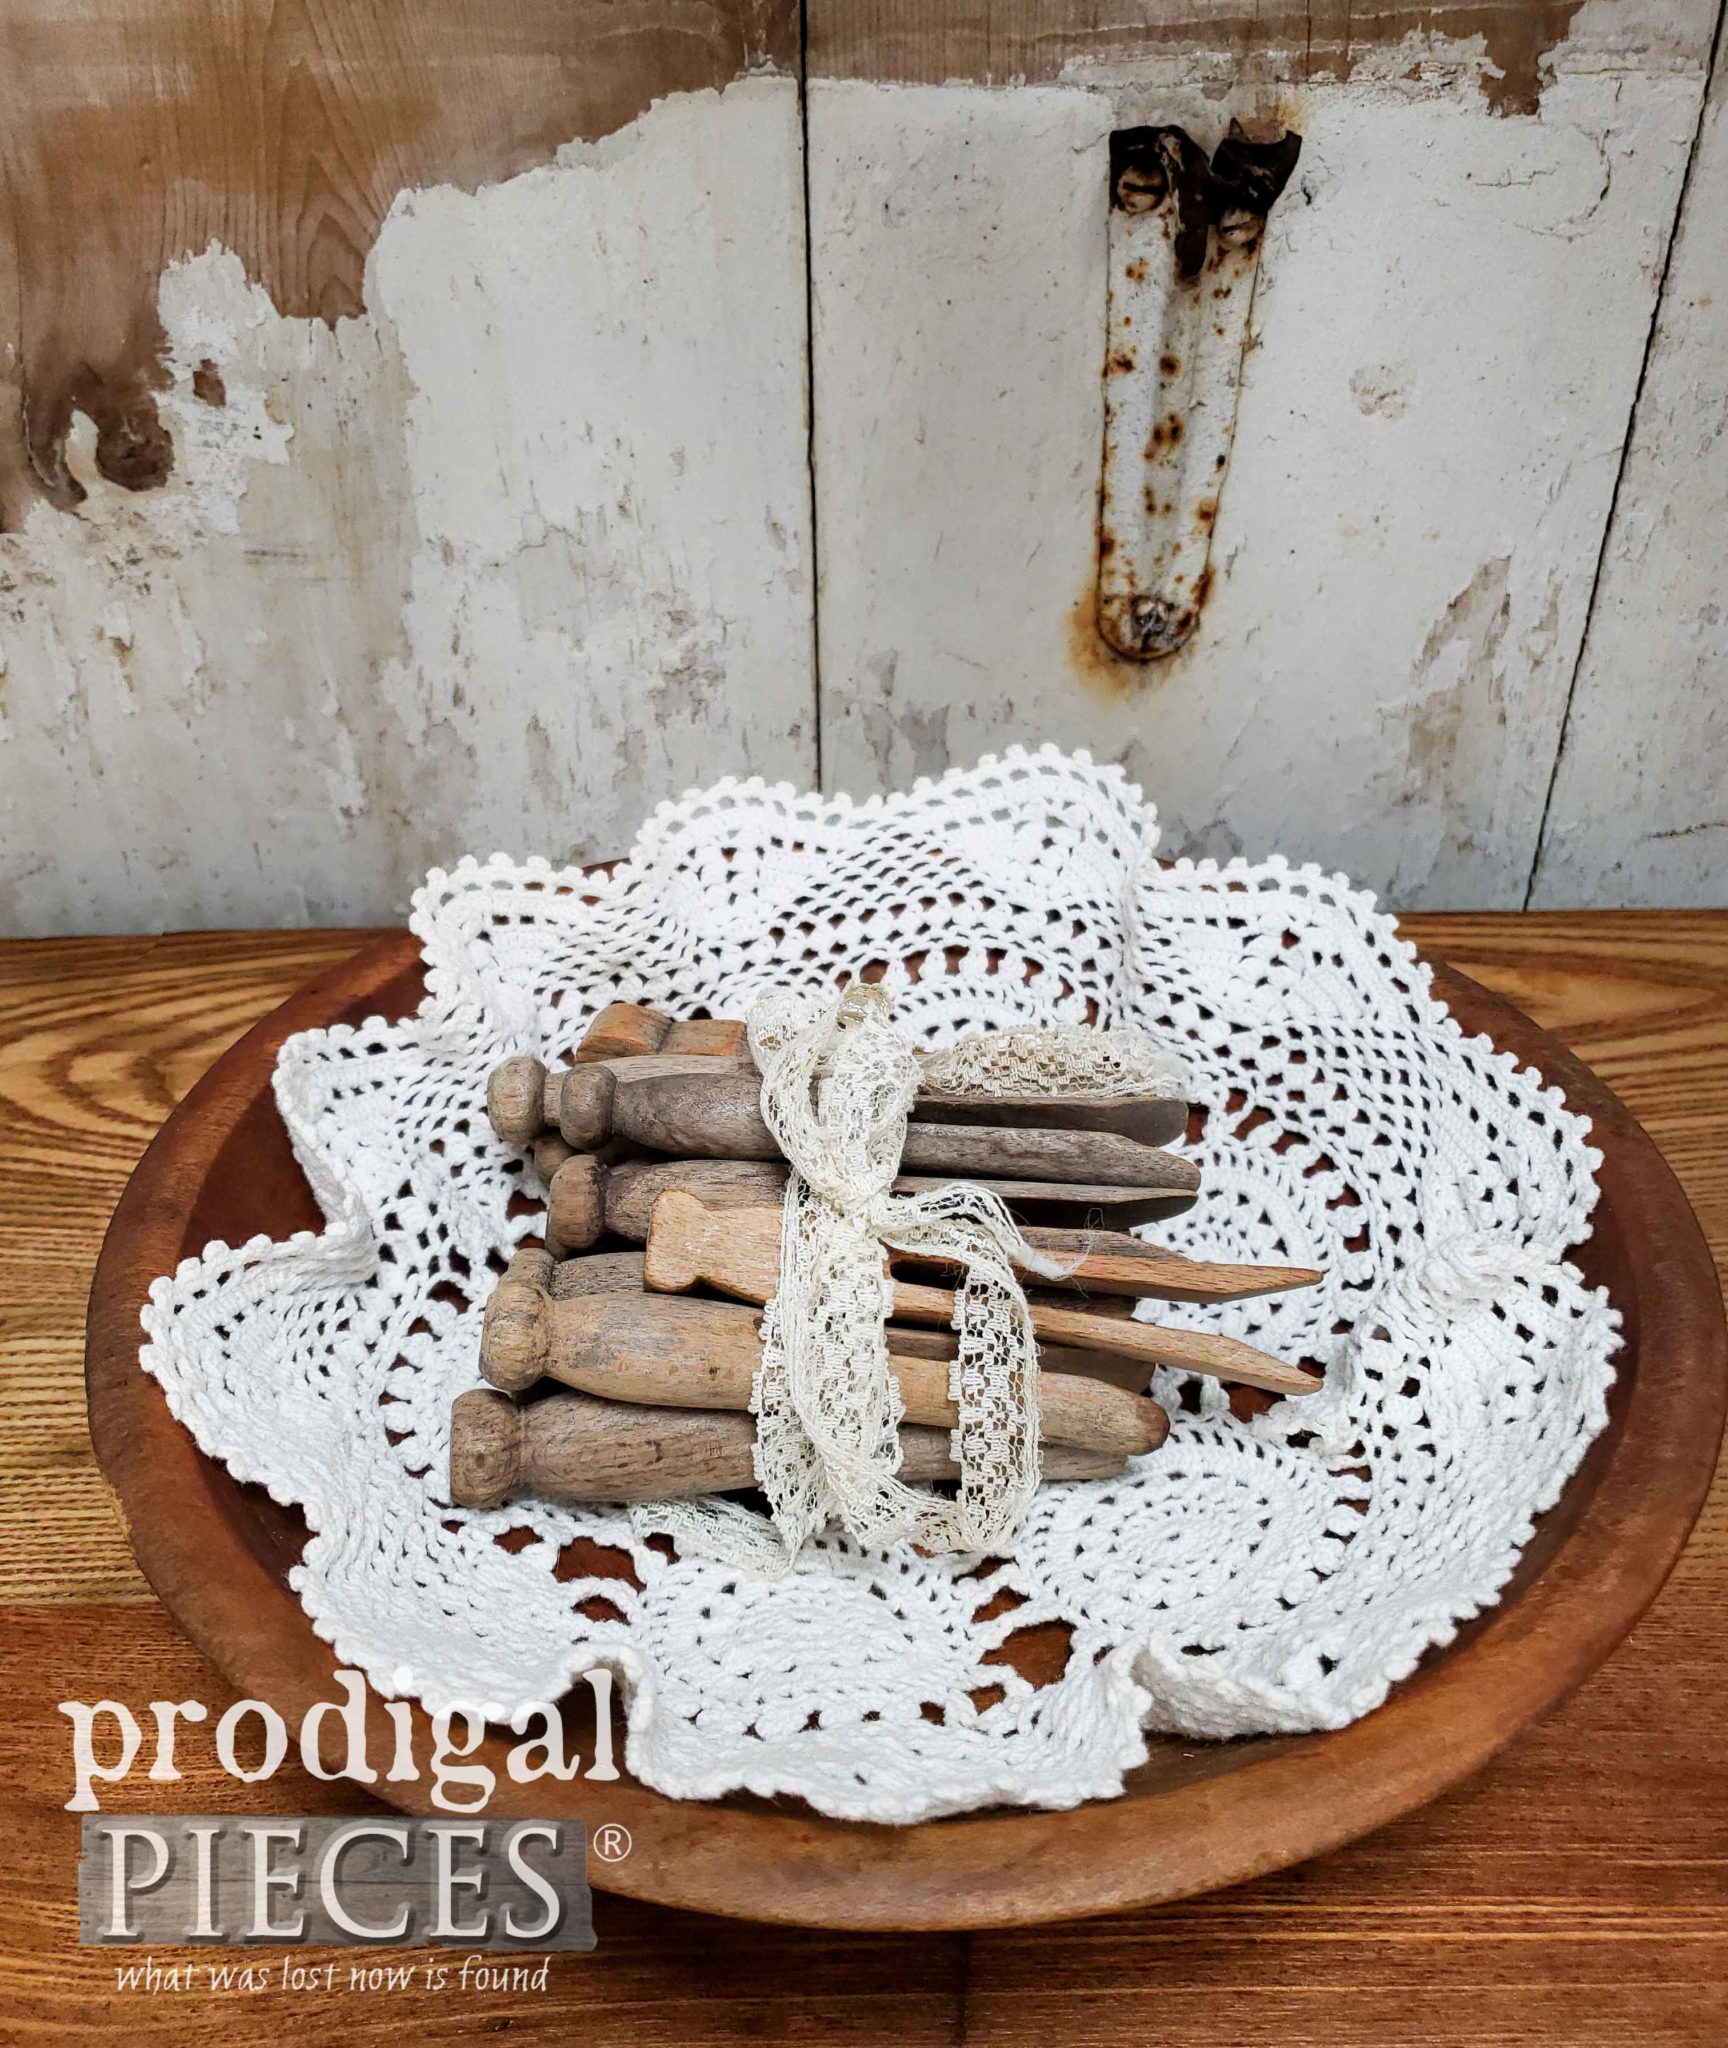 Vintage Farmhouse Vignette with Antique Wooden Clothespins by Larissa of Prodigal Pieces | prodigalpieces.com #prodigalpieces #home #handmade #farmhouse #homedecor